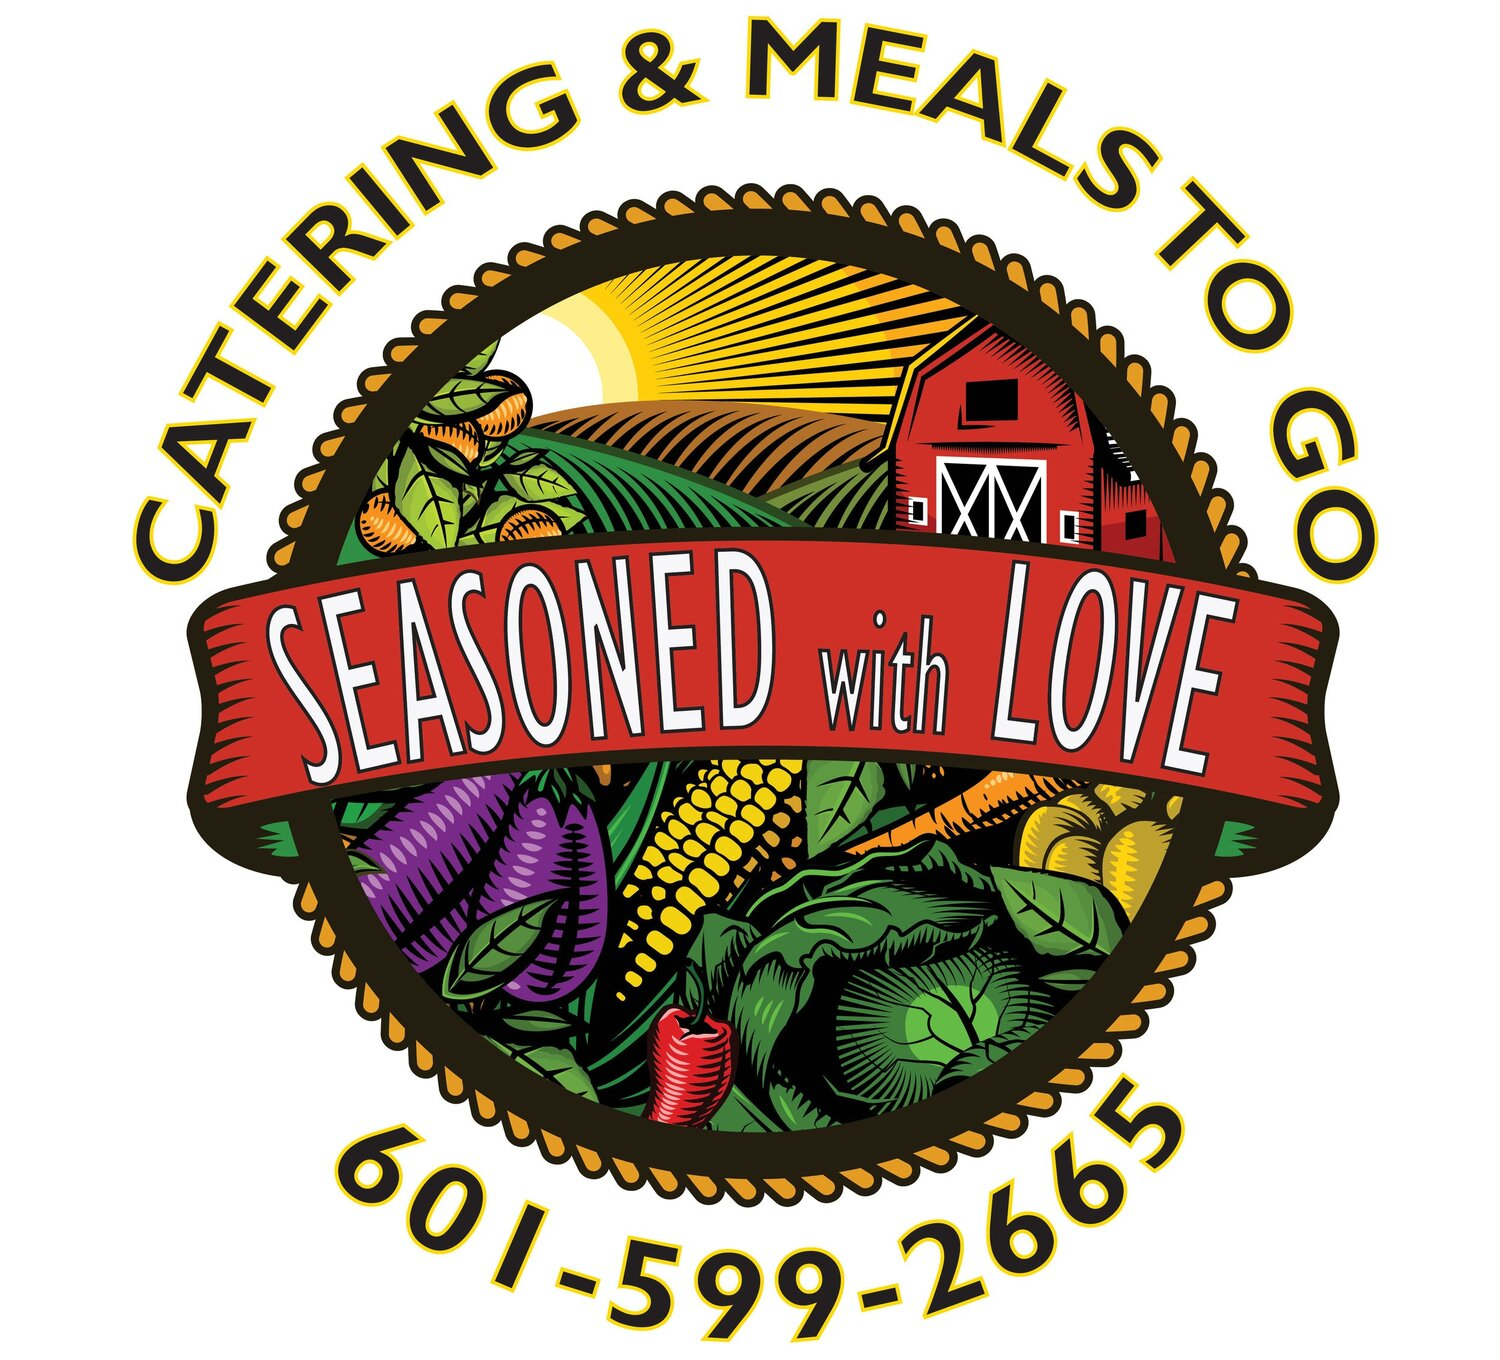 Seasoned with Love - Order Catering Delivery here!